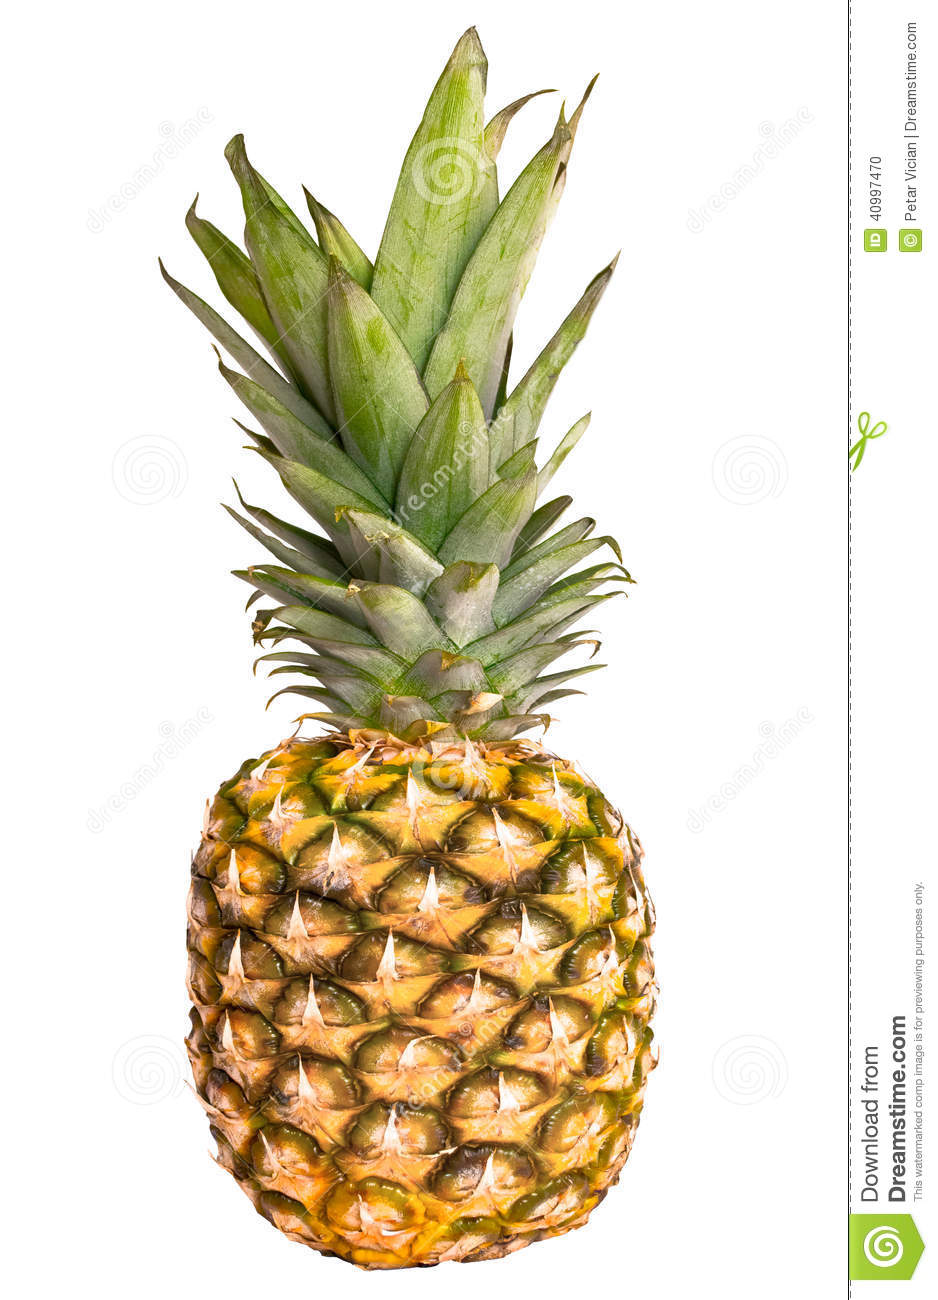 Pineapple Ananas Fruit Isolated On White Background Stock